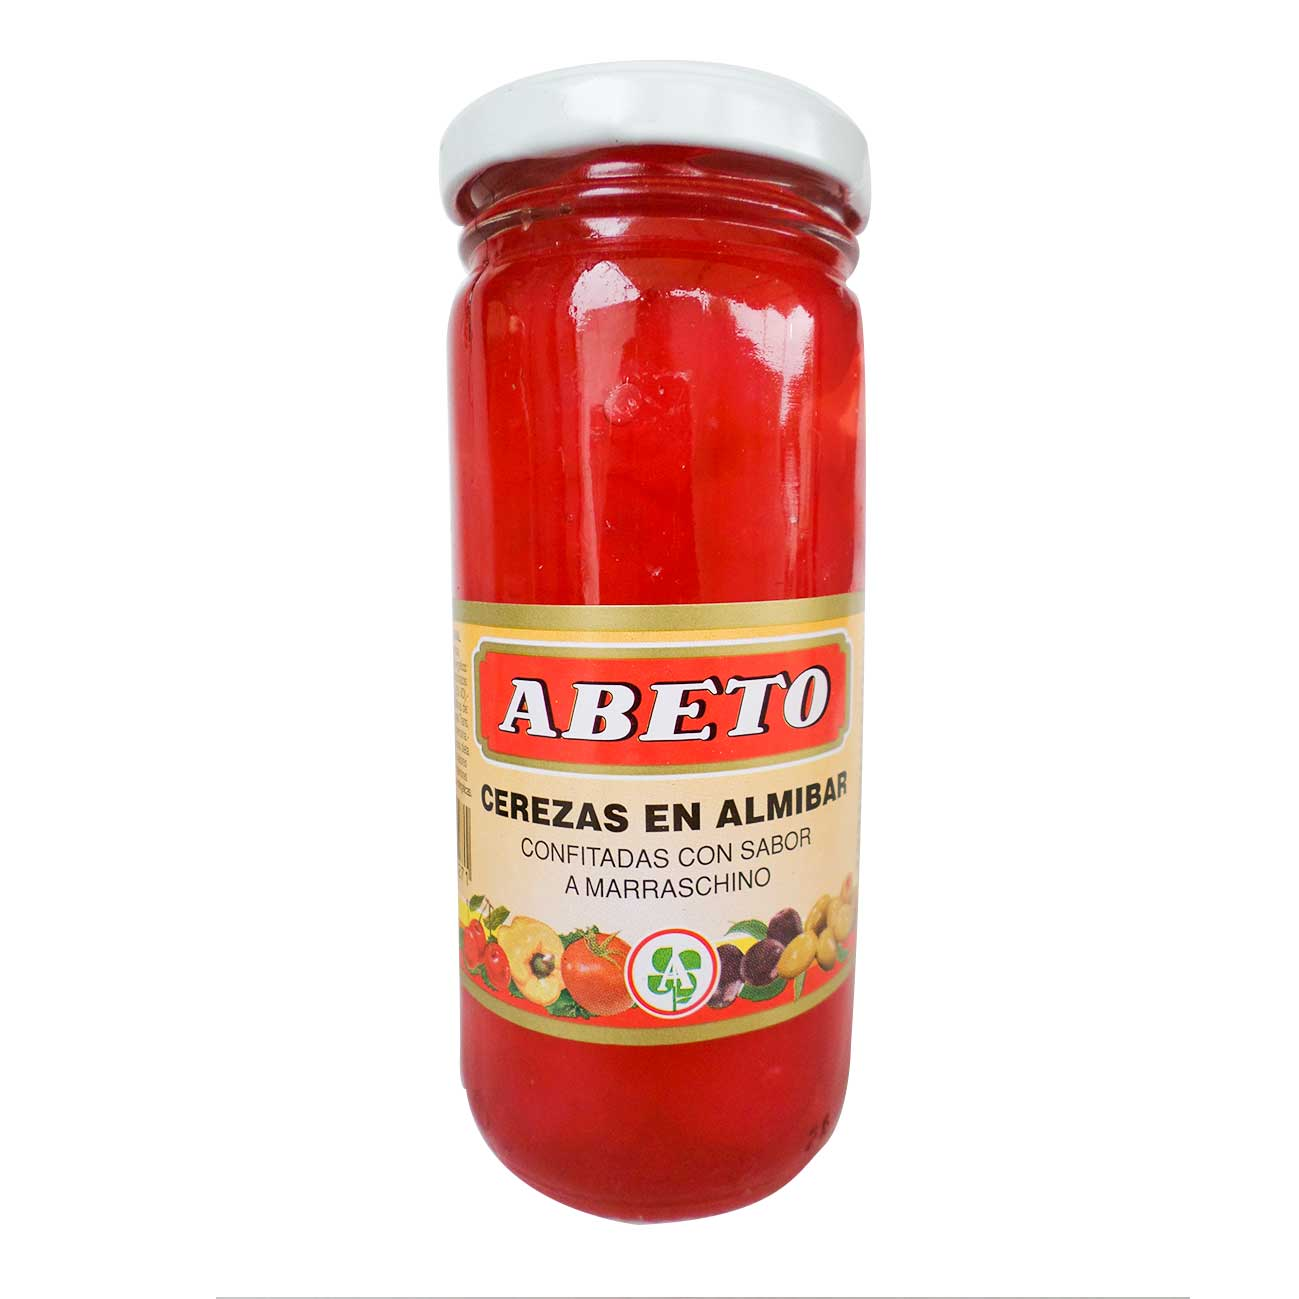 Cerezas al marraschino enteras 210g ABETO